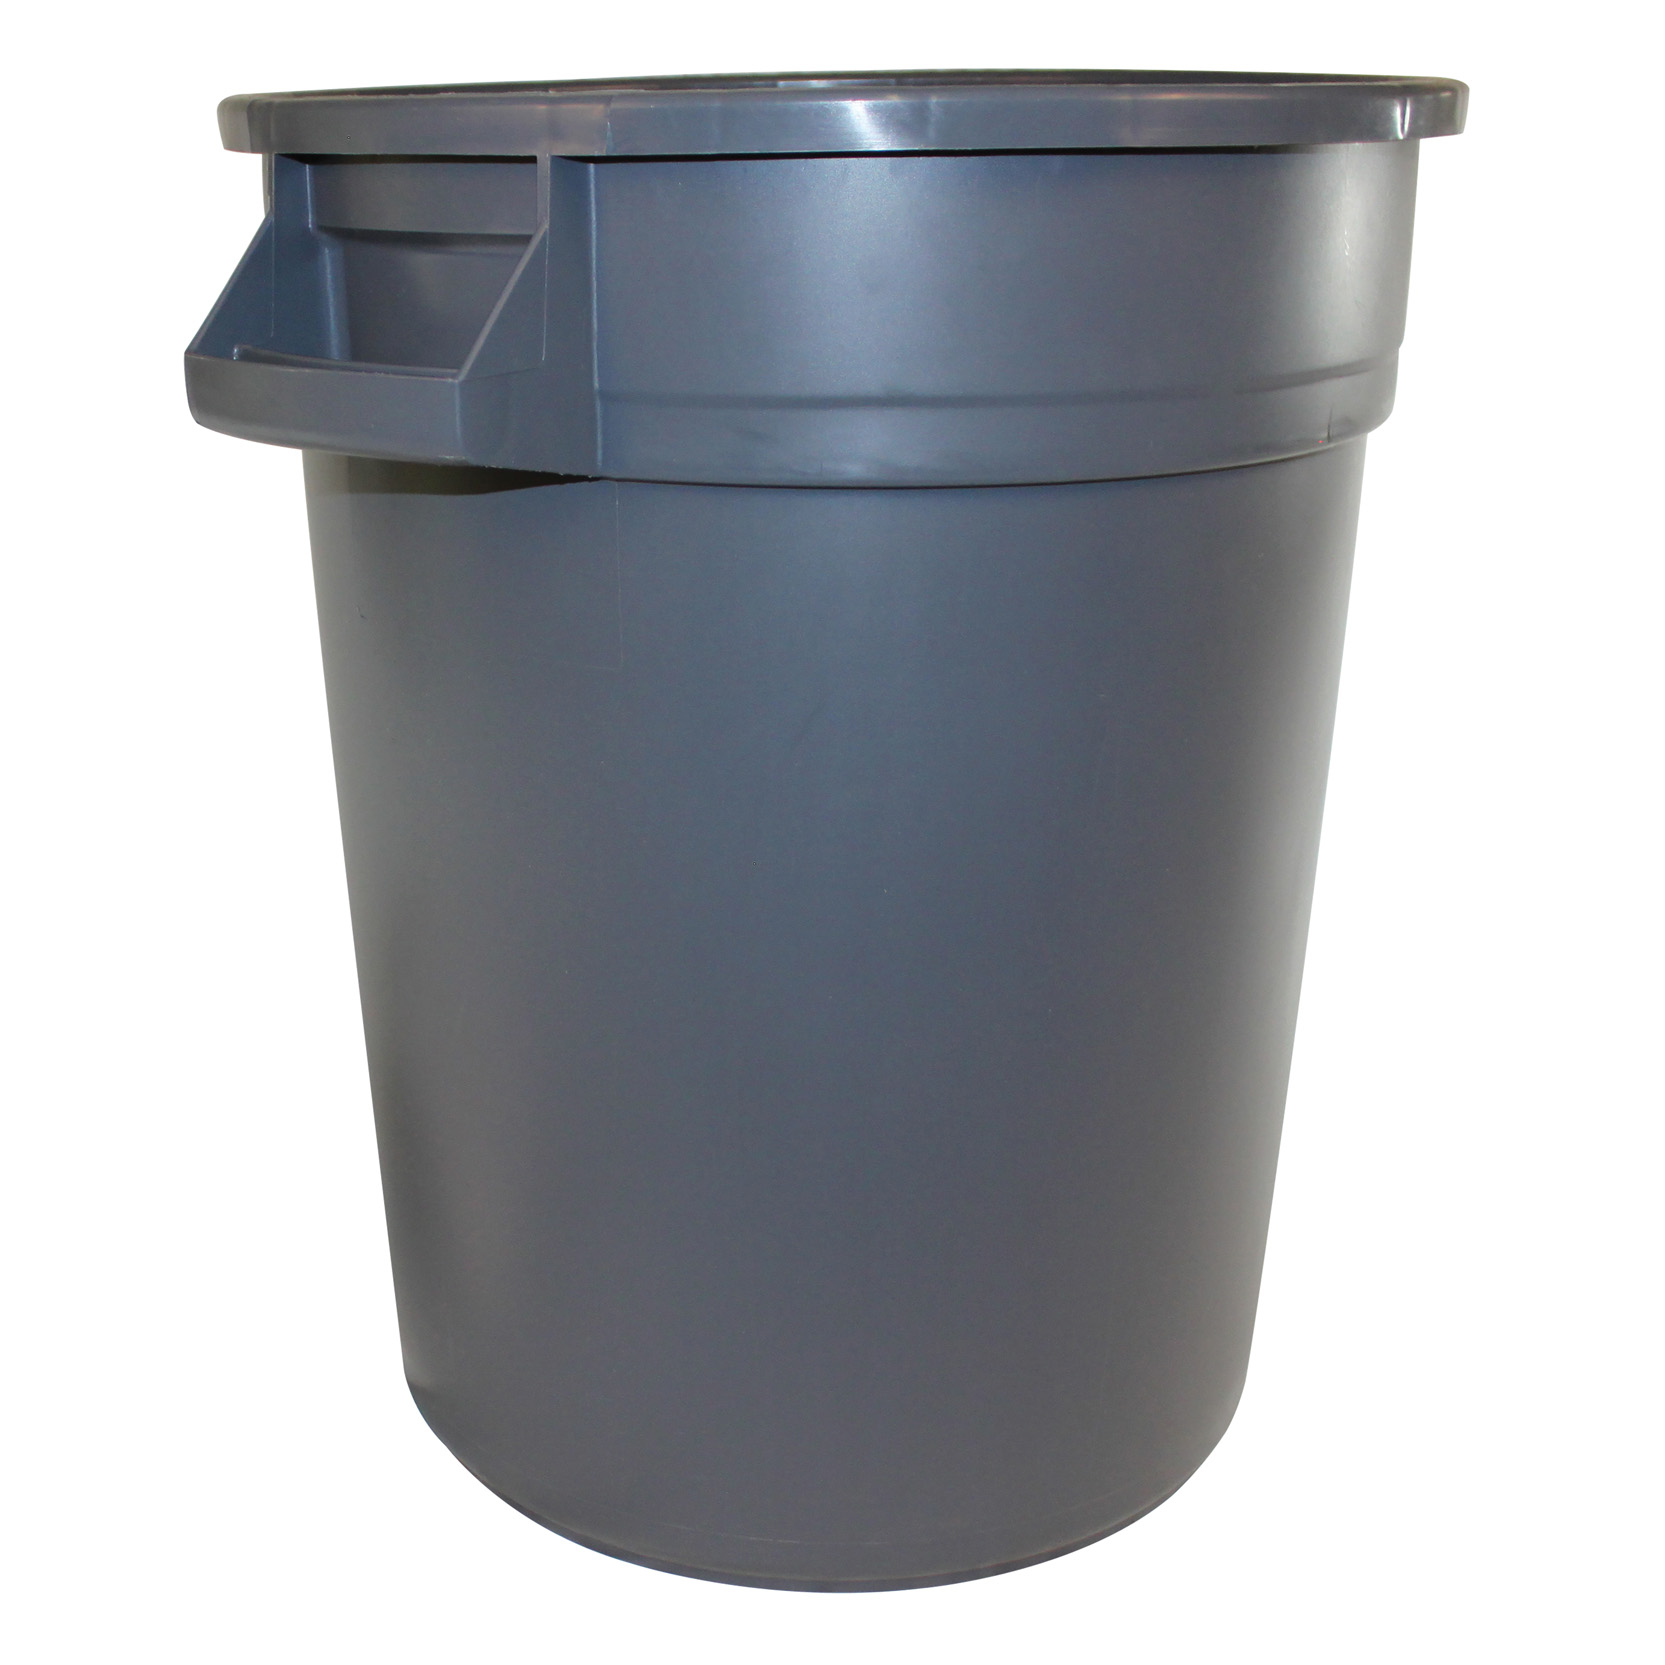 3700-02 Impact Products 7720-3 trash can / container, commercial